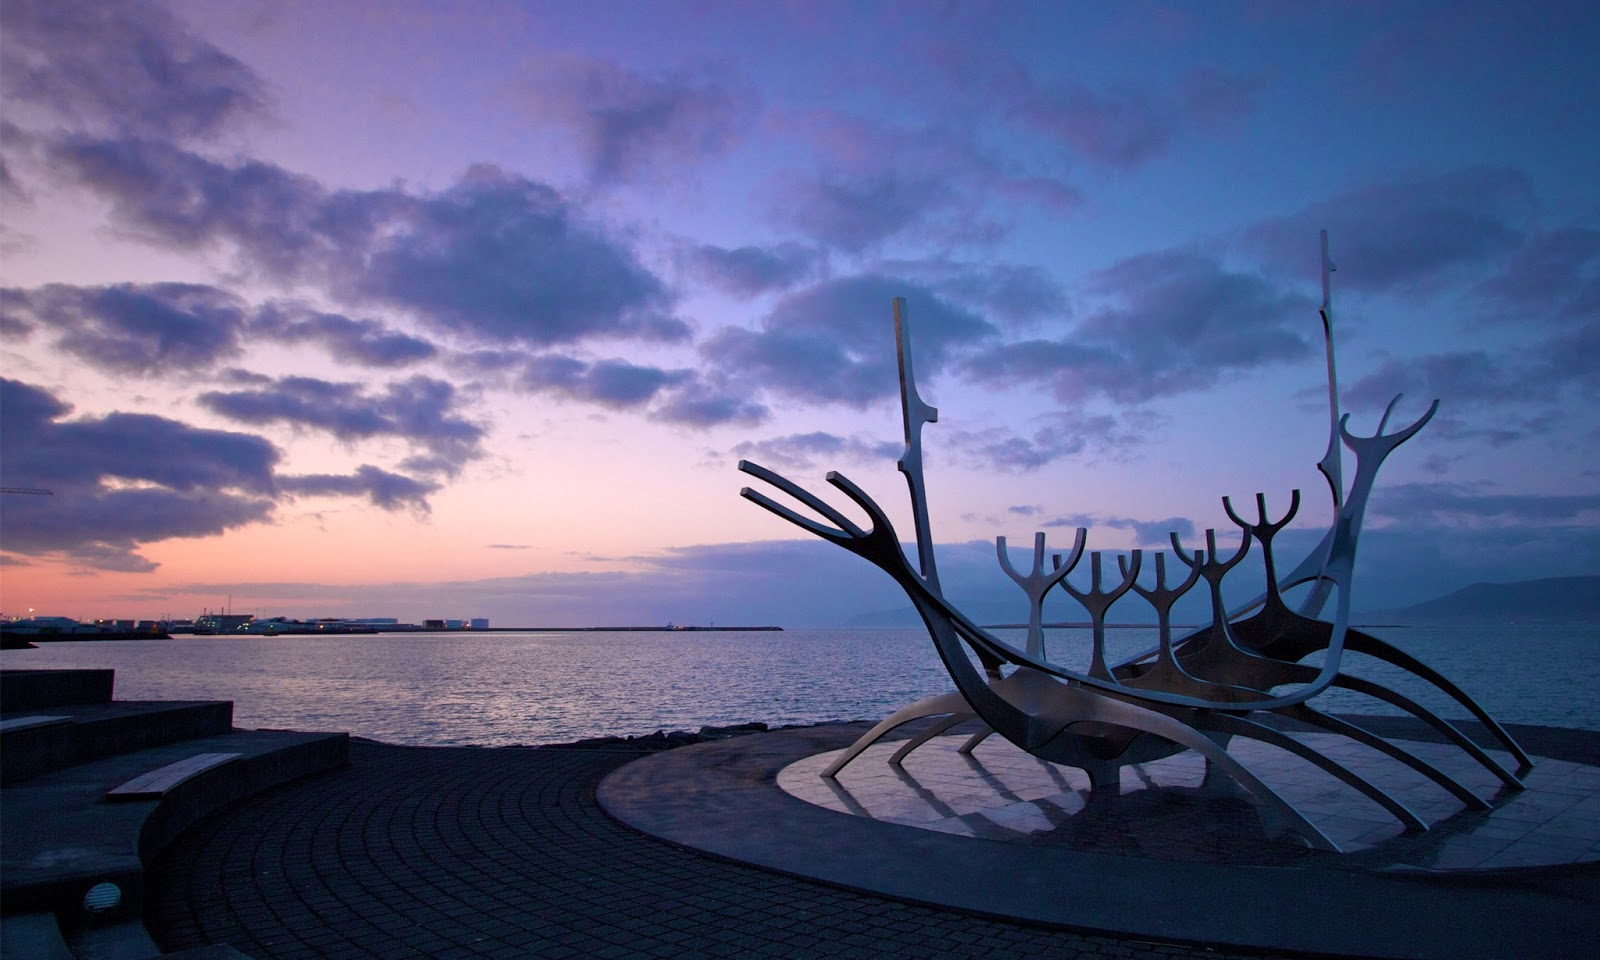 iceland hd wallpapers - photo #29